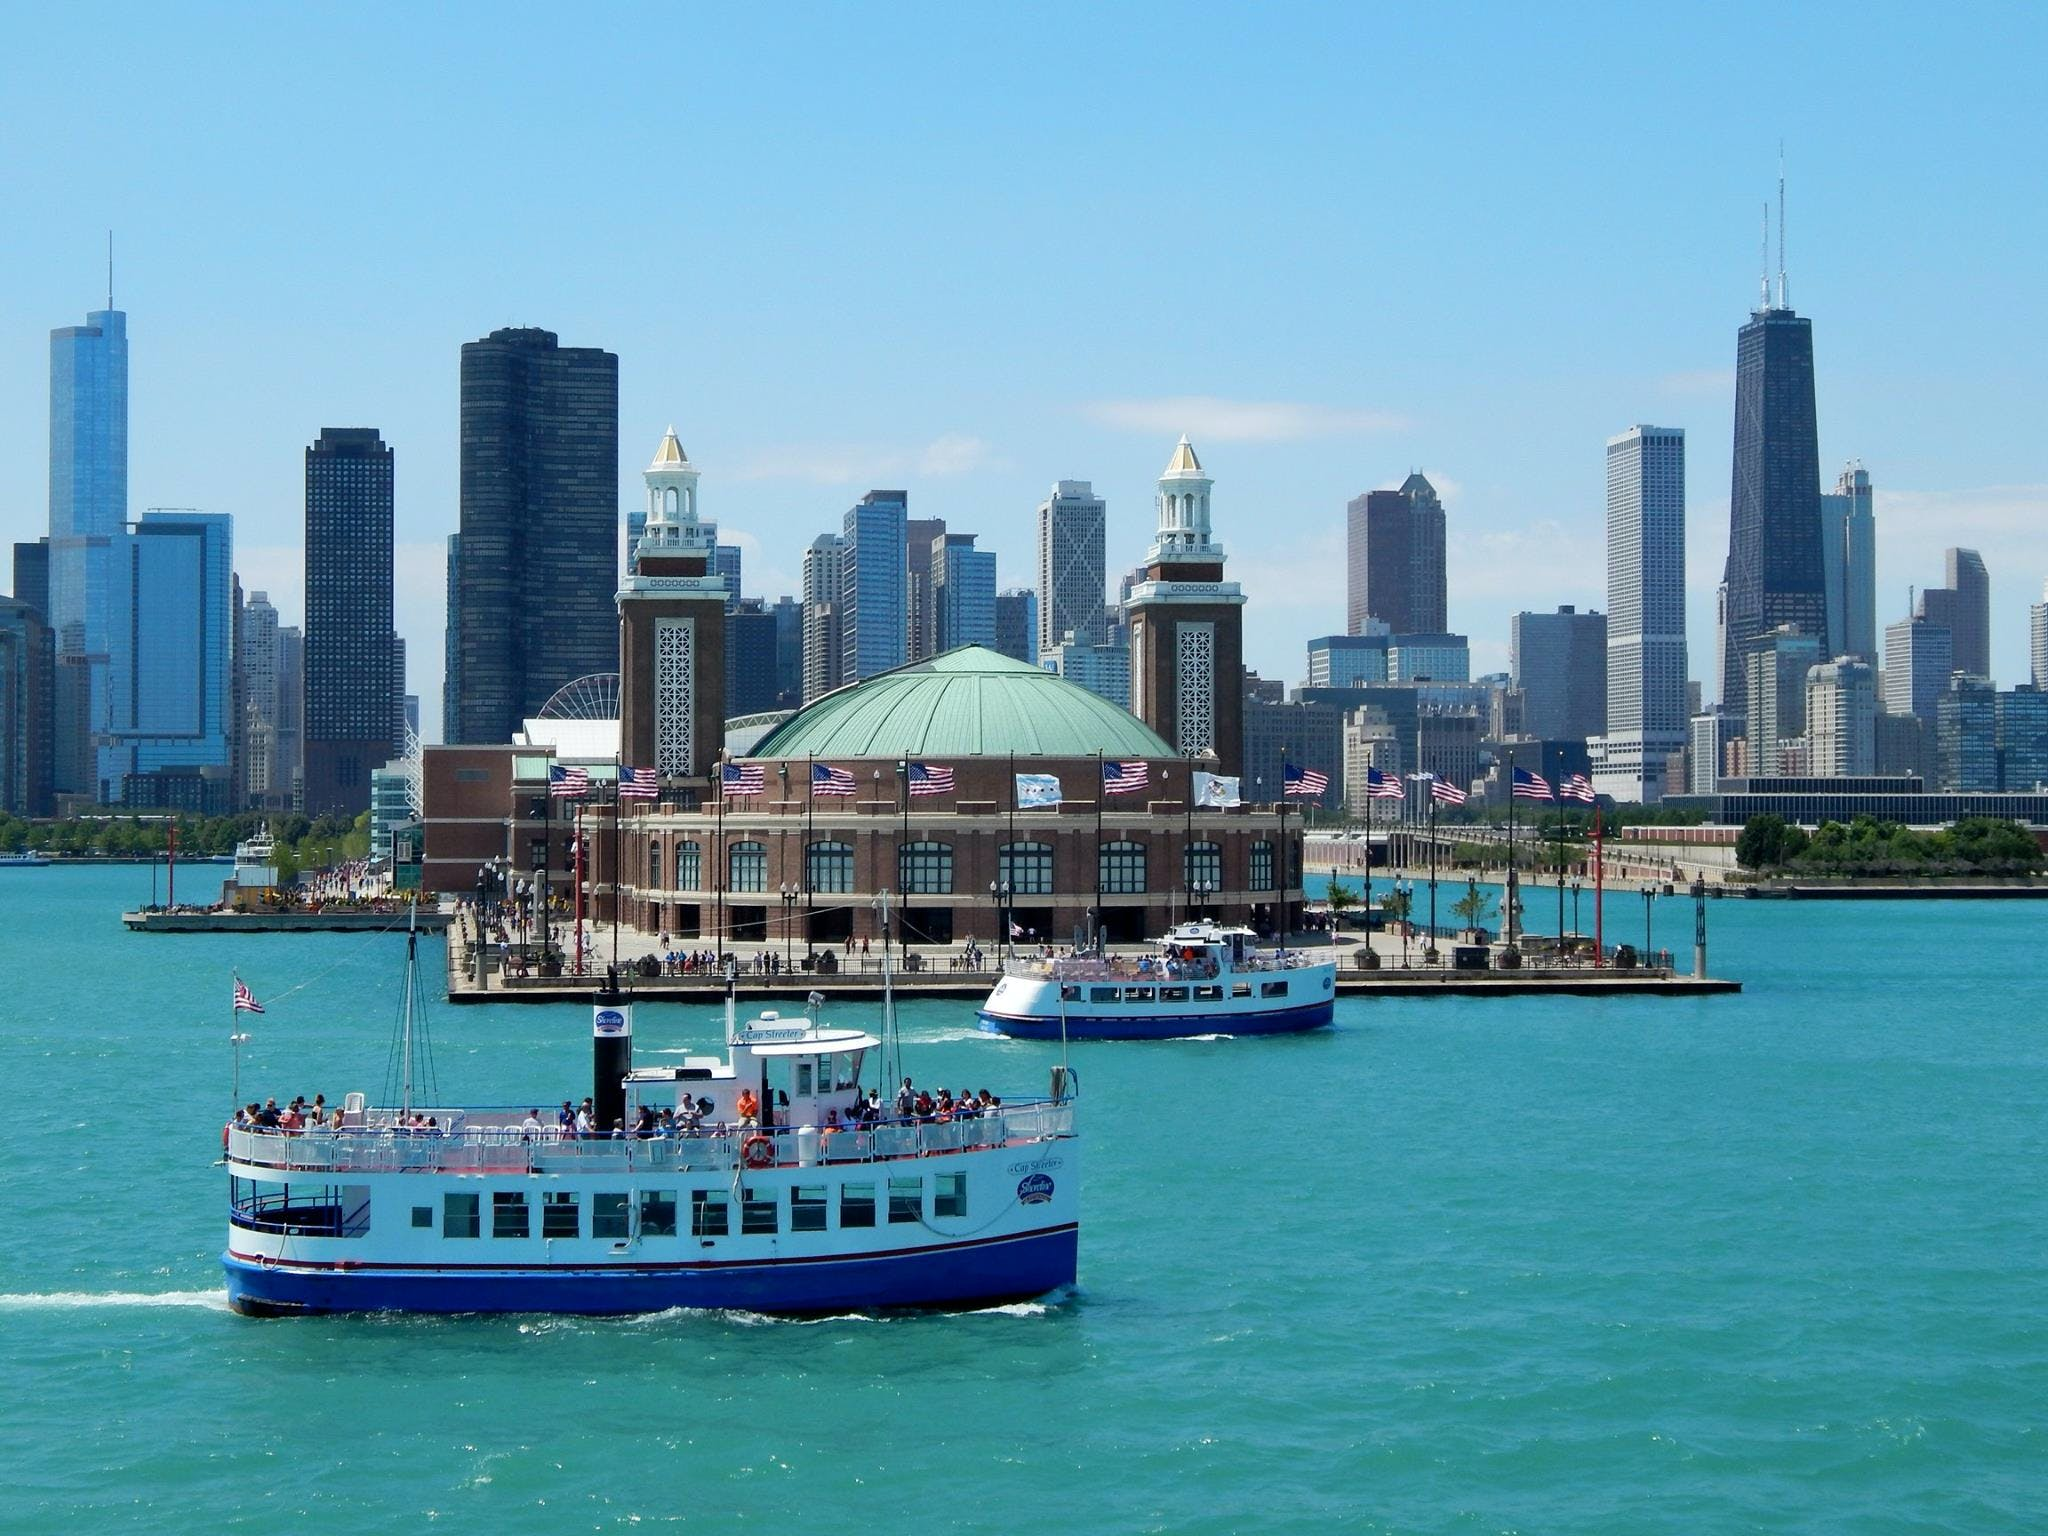 Classic lake boat tour from Navy Pier